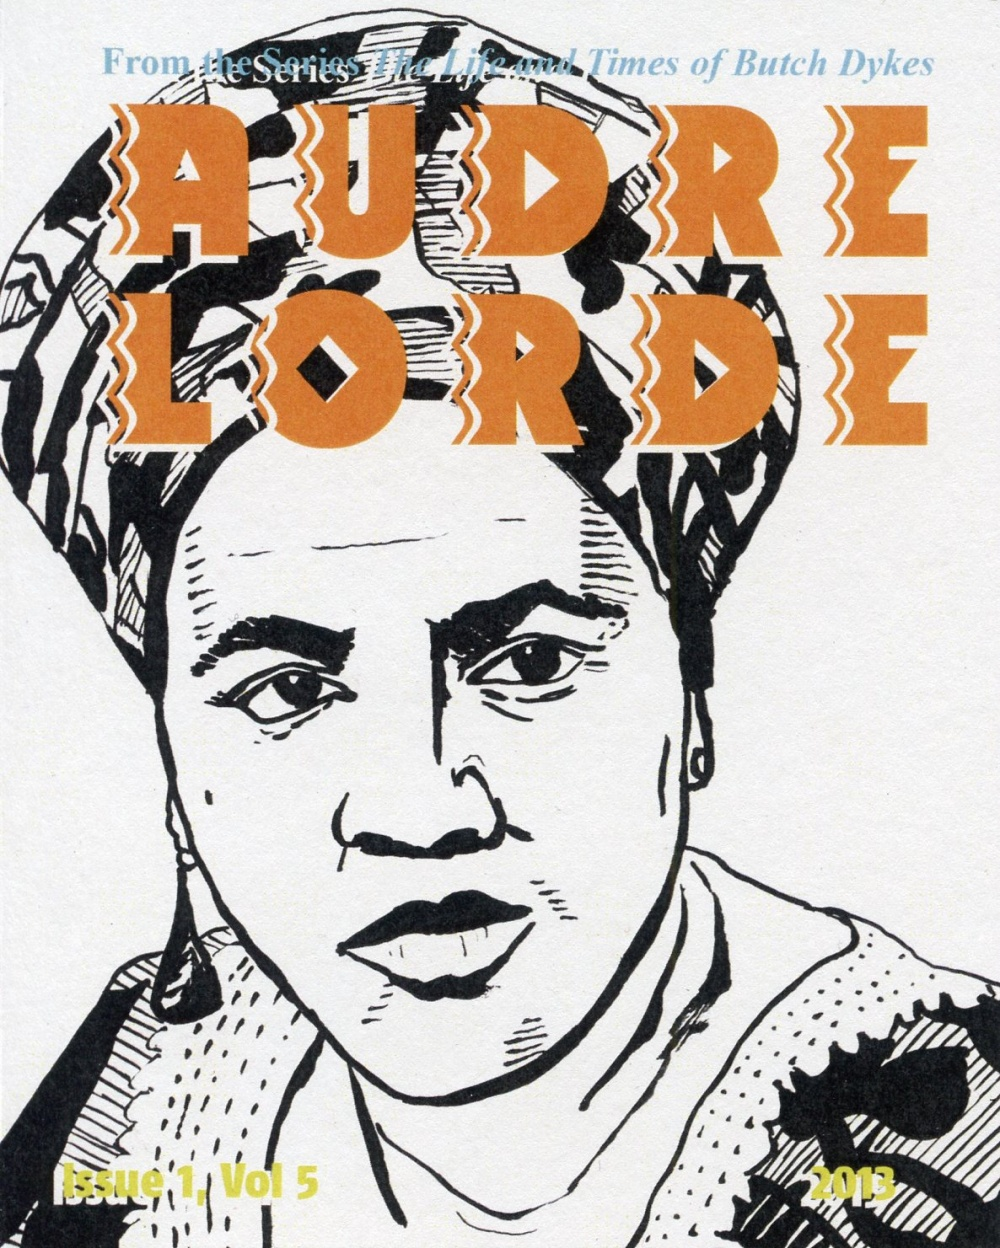 From the series The Life and Times of Butch Dykes: AUDRE LORDE